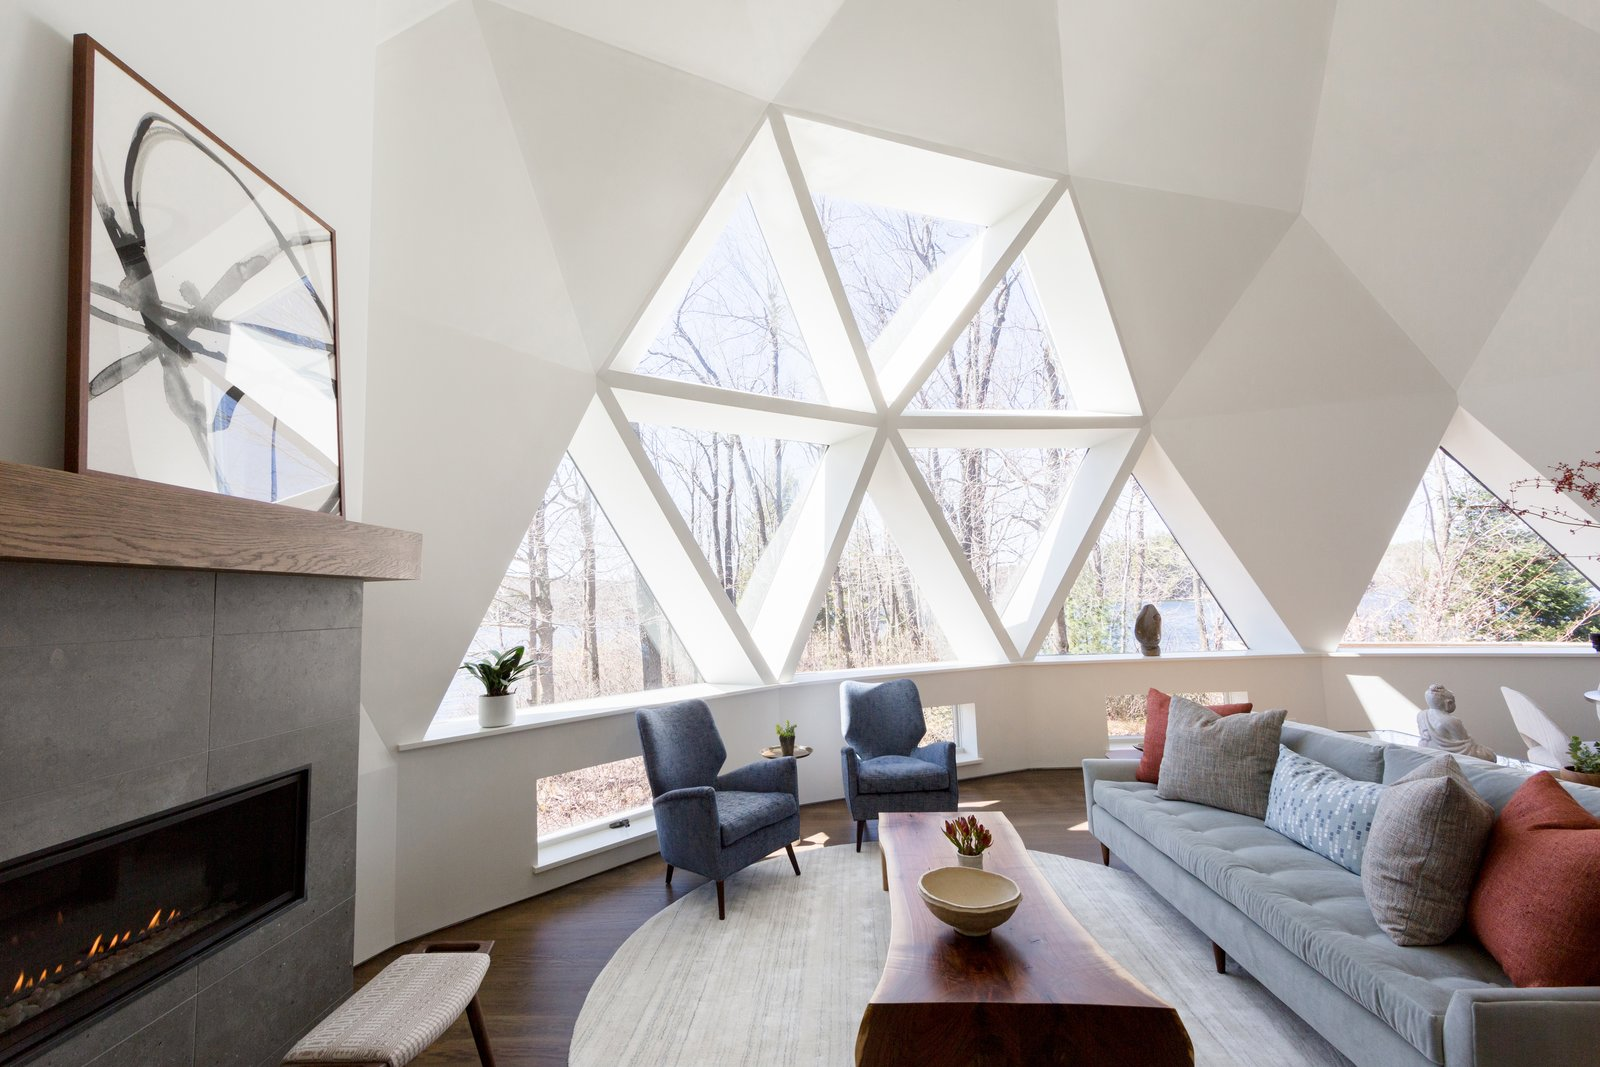 Photo 1 Of 7930 In Living Photos From A Geodesic Dome Shines With A Light And Bright Makeover Dwell